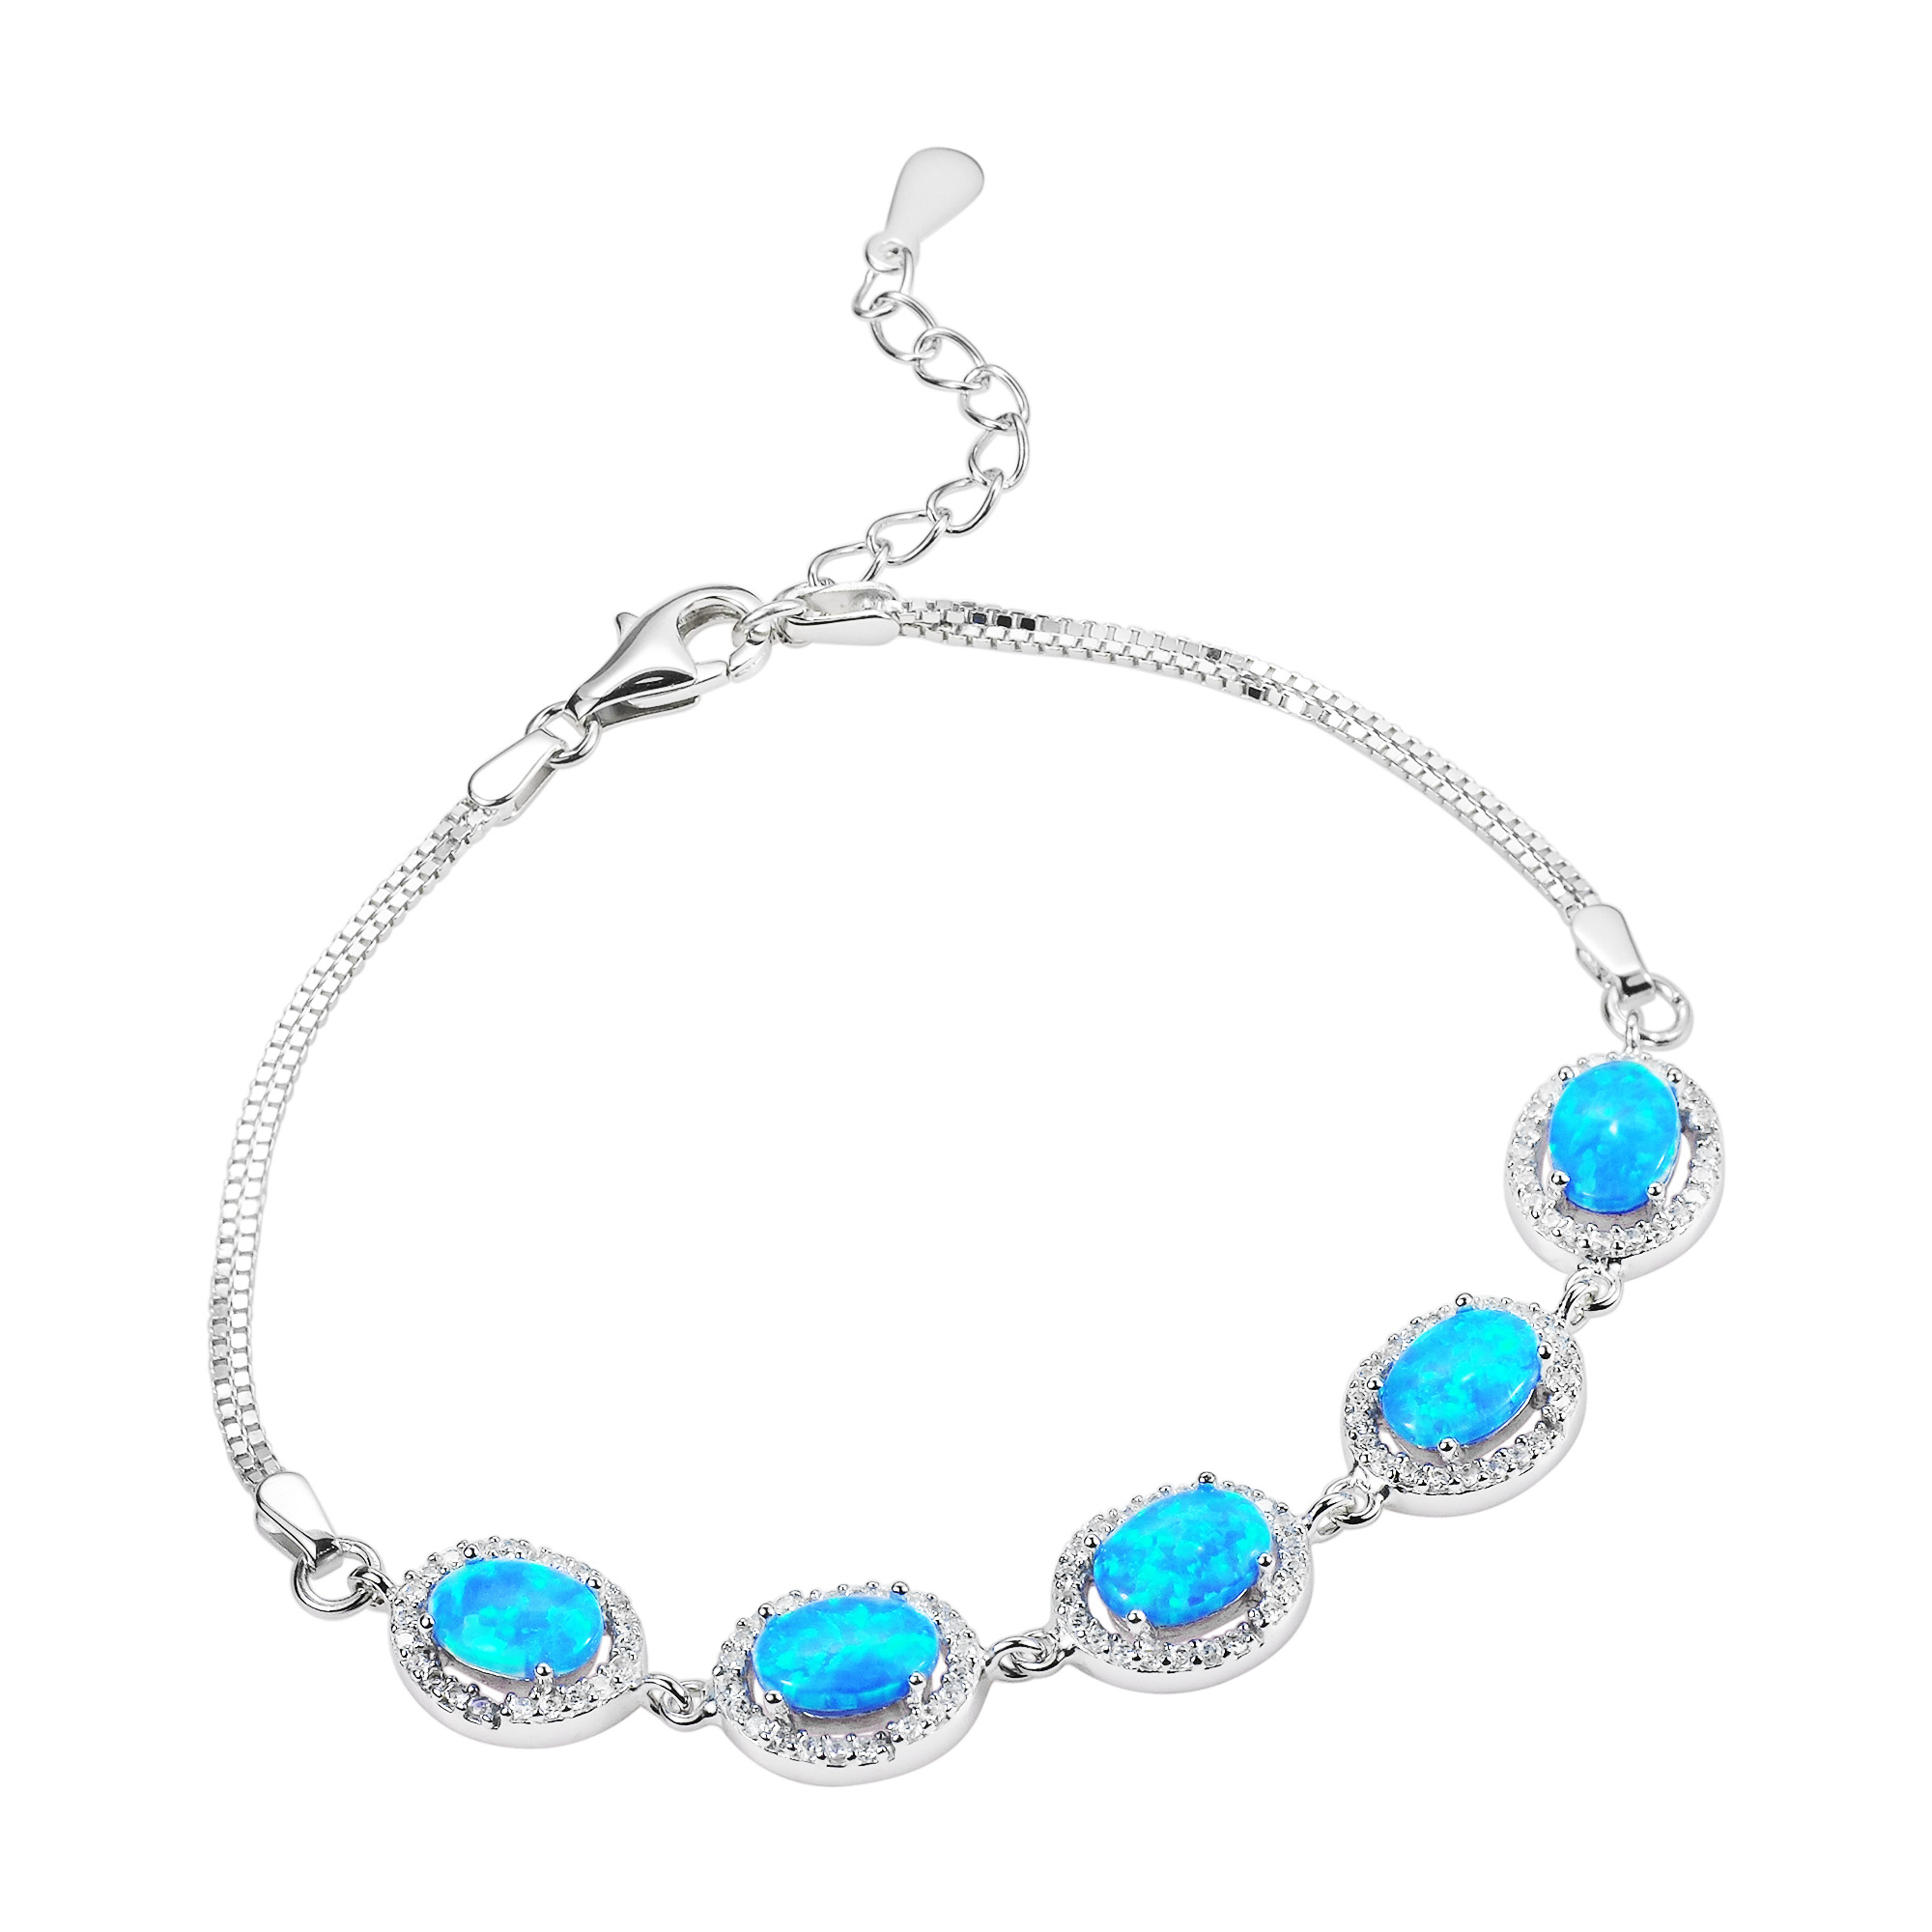 Magical Oval Of Light Blue Opal Oval Link Sterling Silver